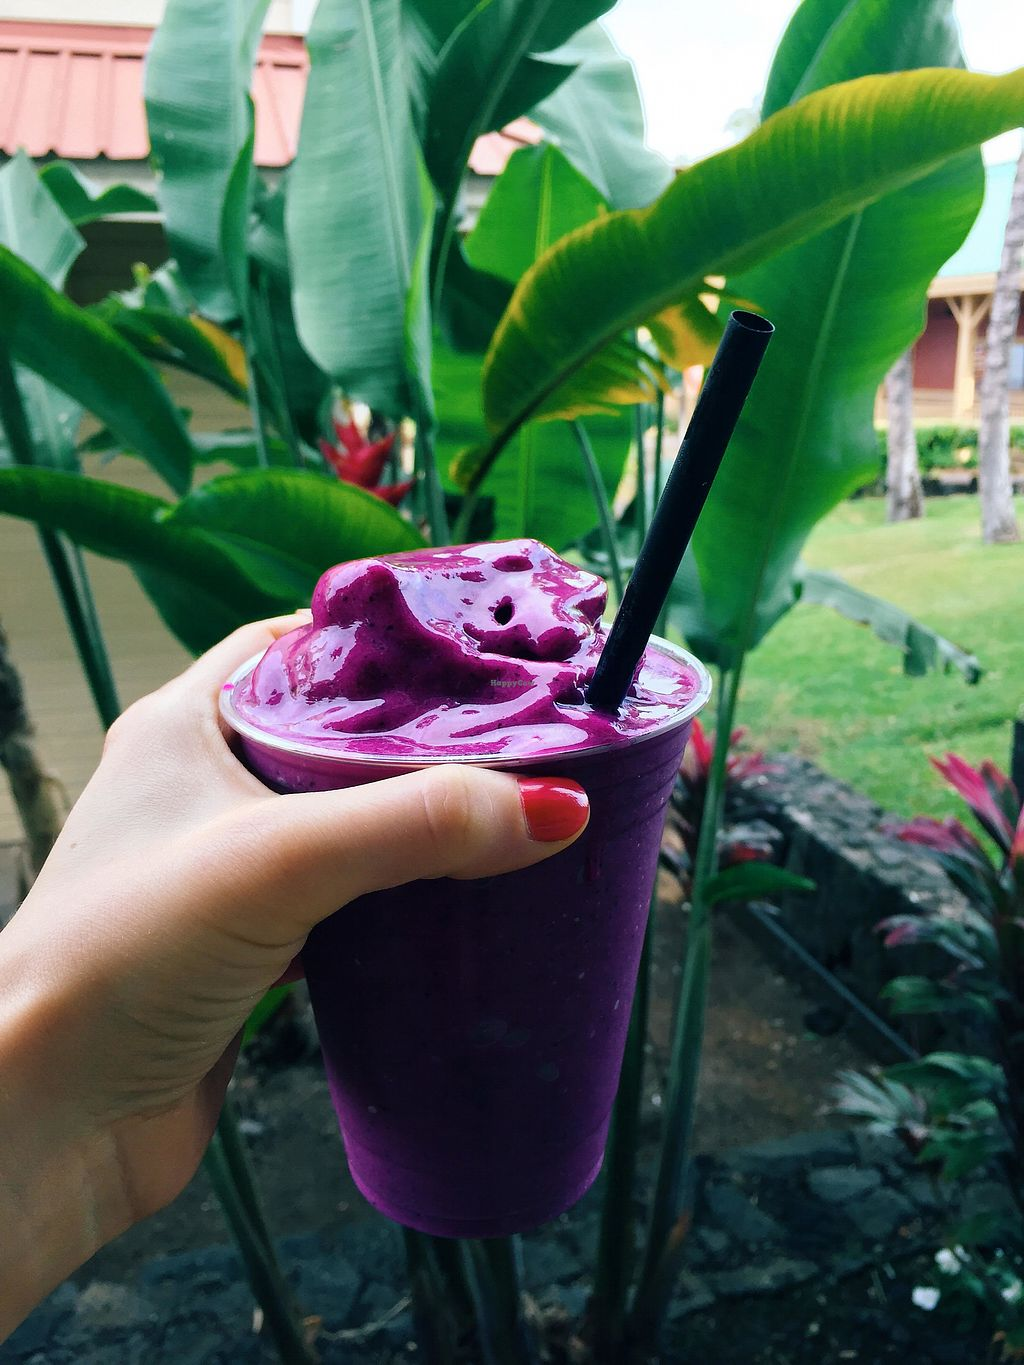 """Photo of Evolution Bakery and Cafe  by <a href=""""/members/profile/Stephaneen"""">Stephaneen</a> <br/>Dragonfruit Smoothie <br/> March 21, 2018  - <a href='/contact/abuse/image/43352/373527'>Report</a>"""